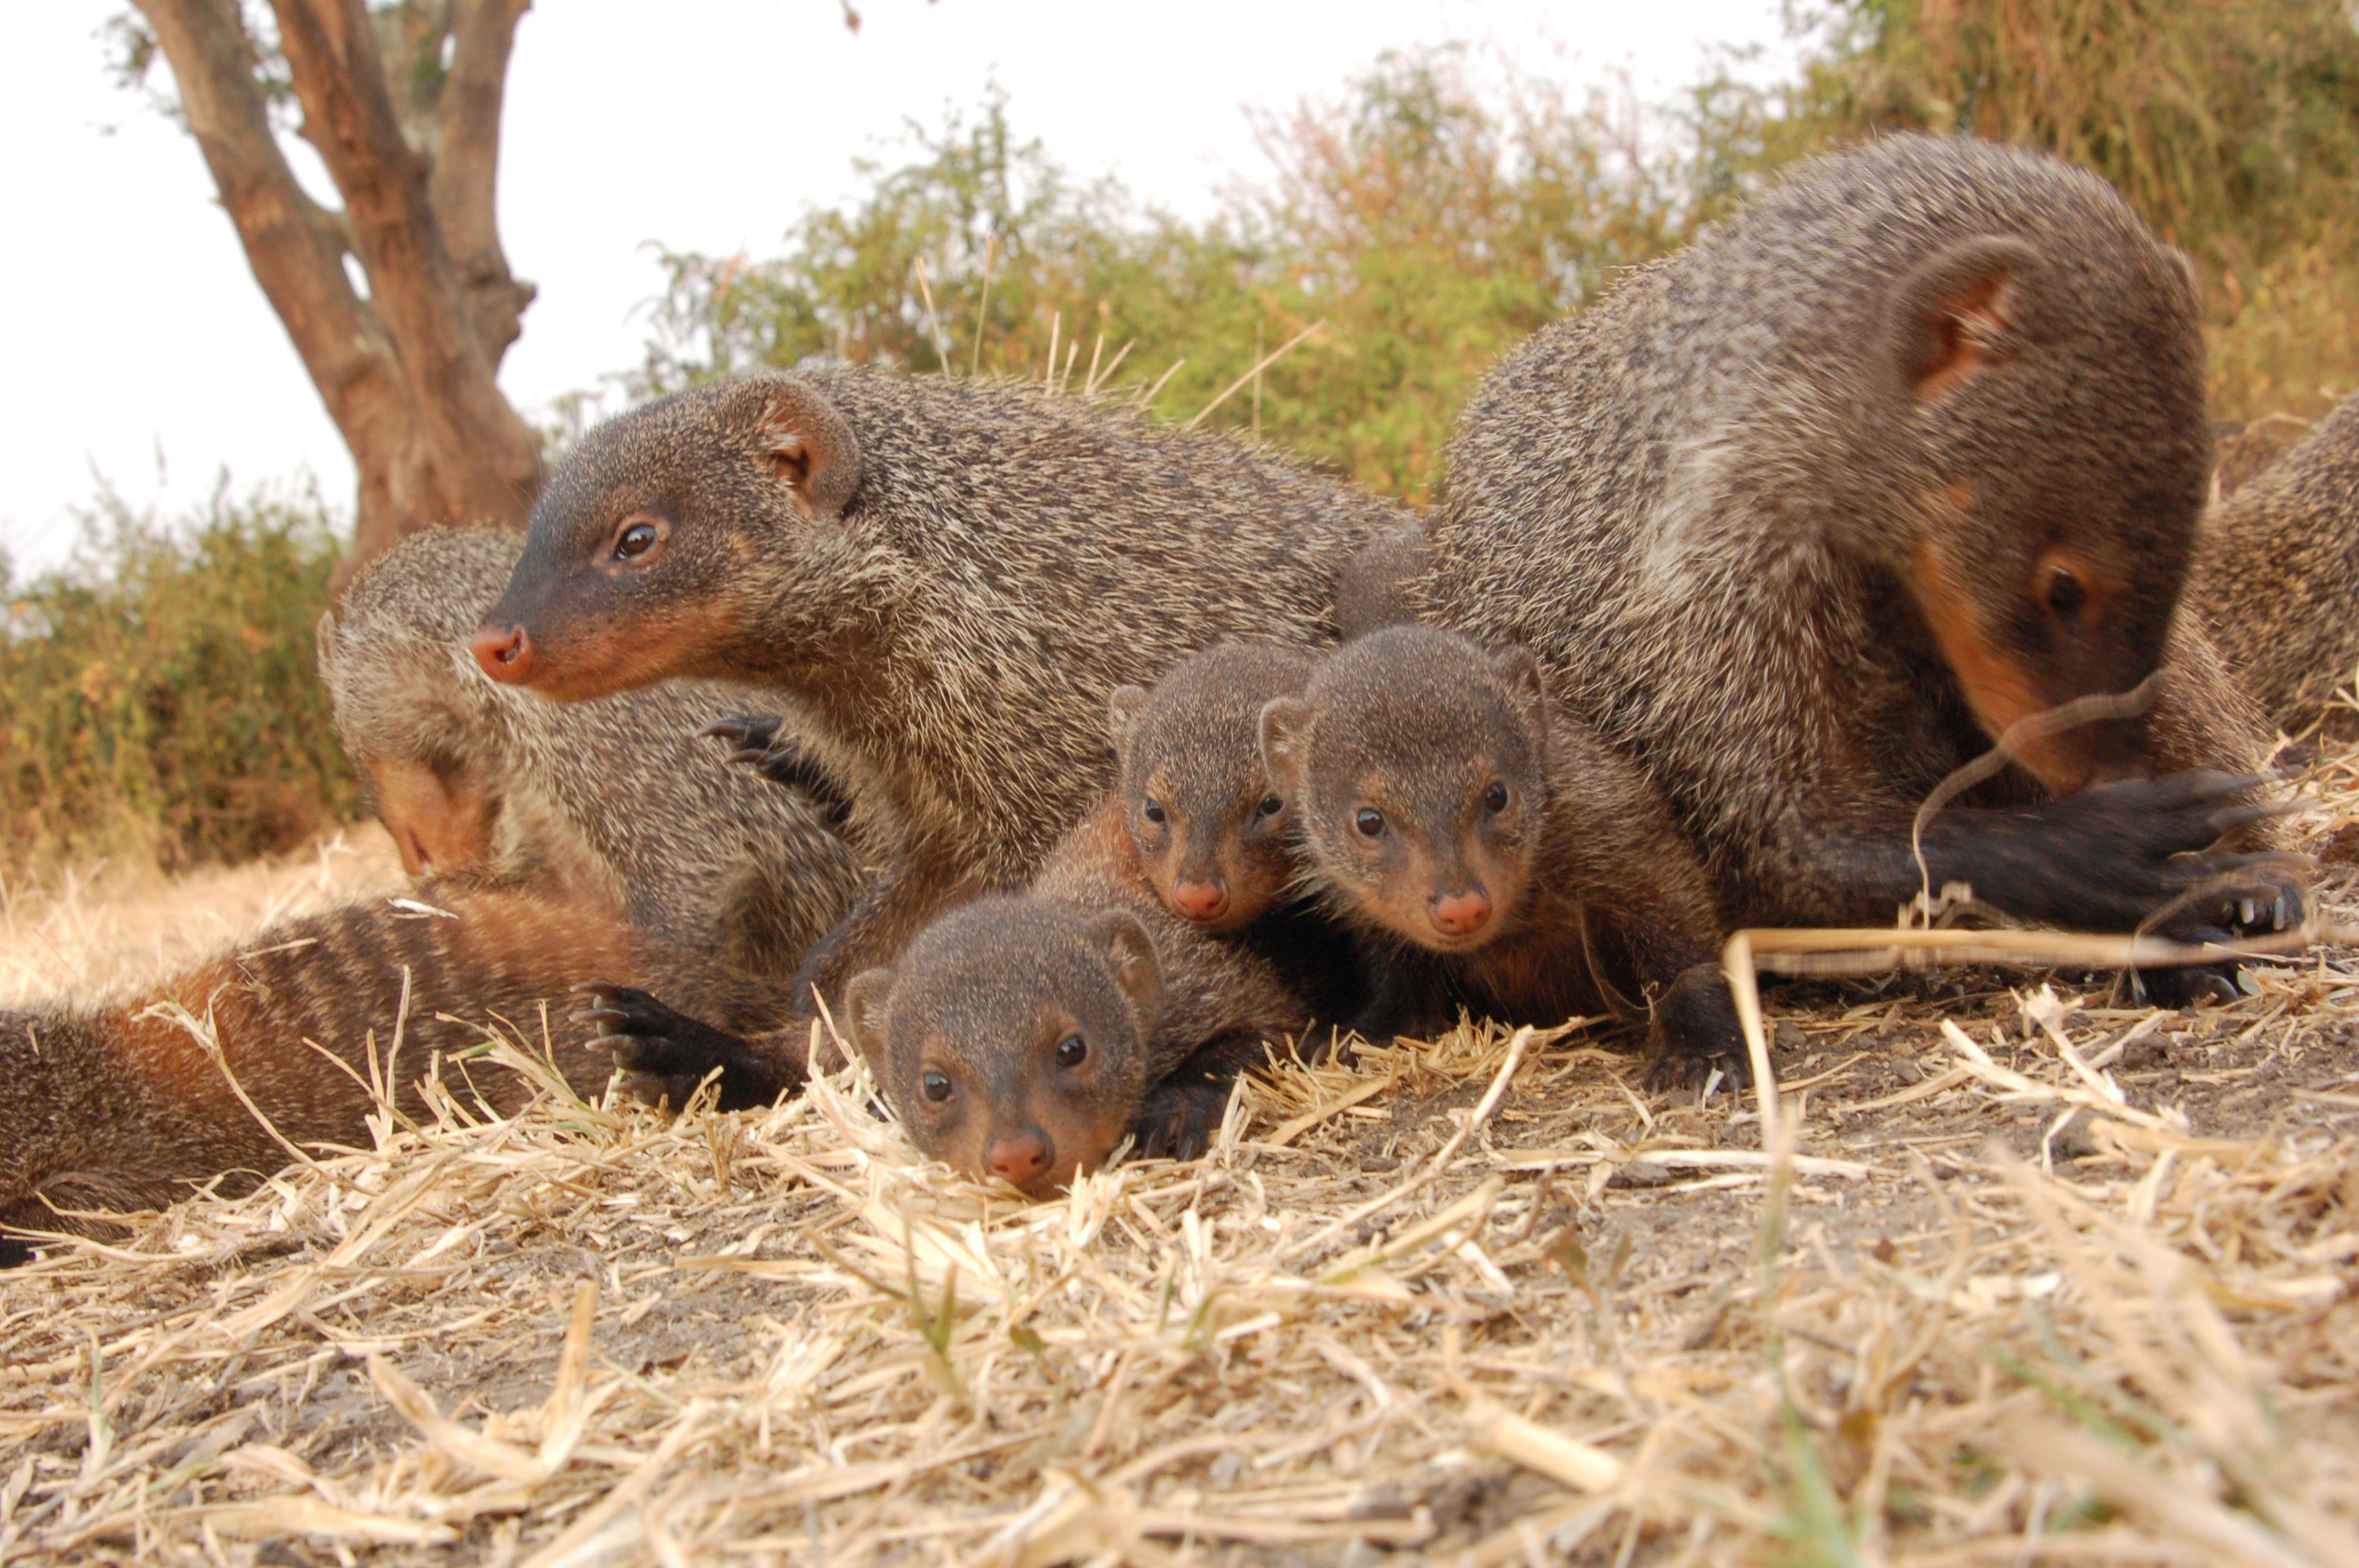 Image - Mongooses who are cared for at an early age have lifelong fitness benefits